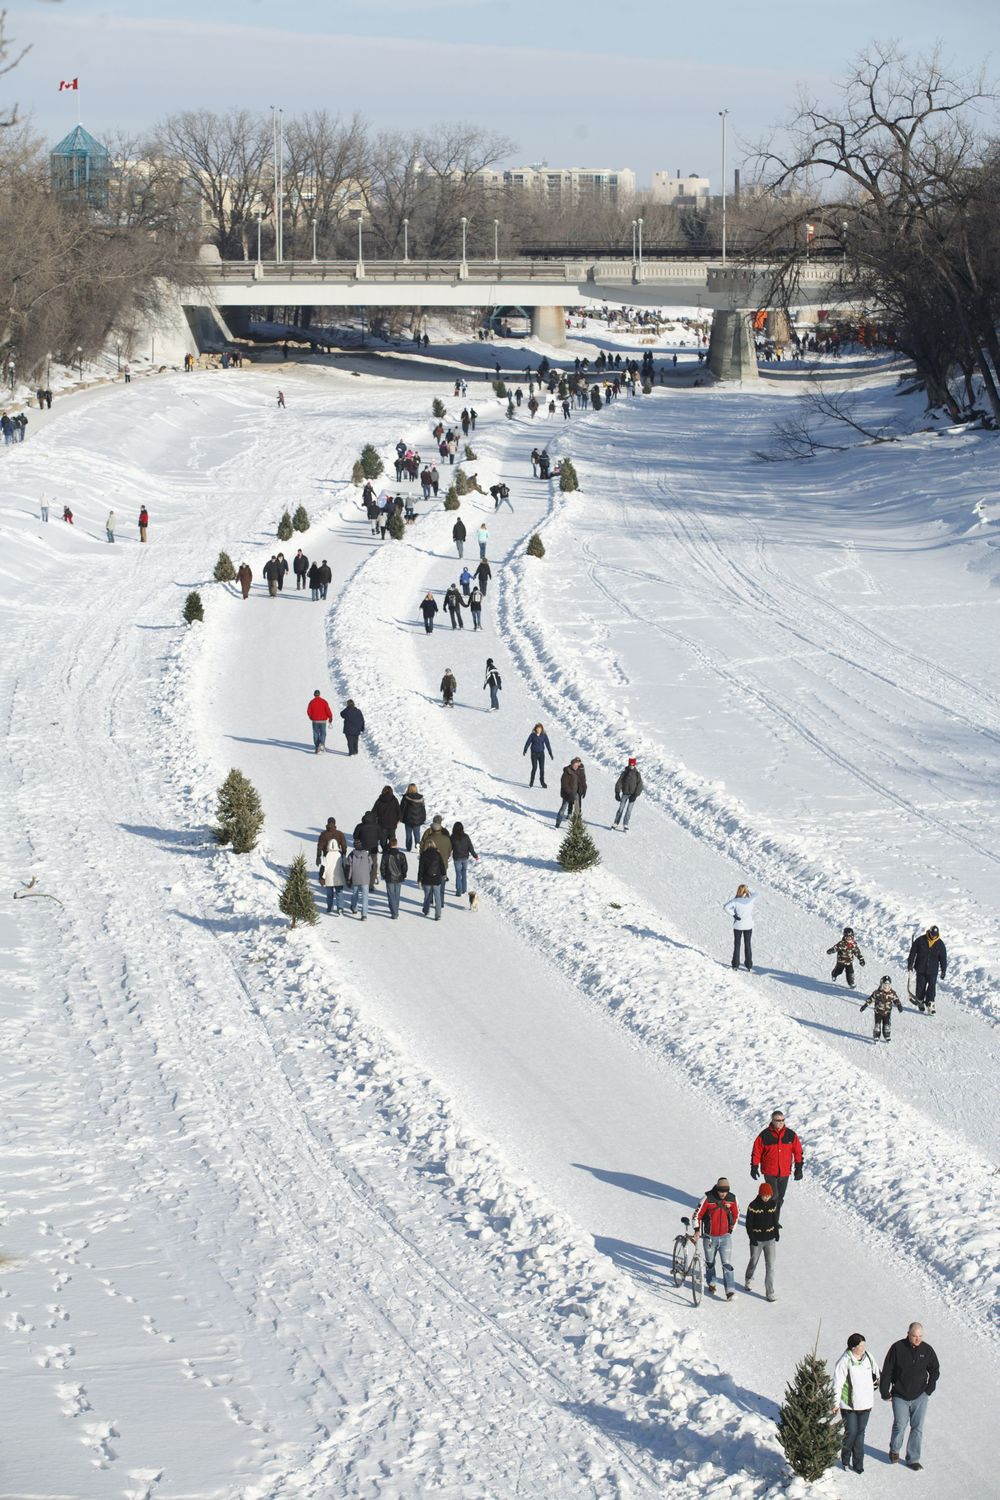 Thousands of people enjoy the world's longest skating rink in Winnipeg.  Perhaps Calgary could convert some if its pathway system into a skating trail.  (photo courtesy of Tourism Winnipeg)